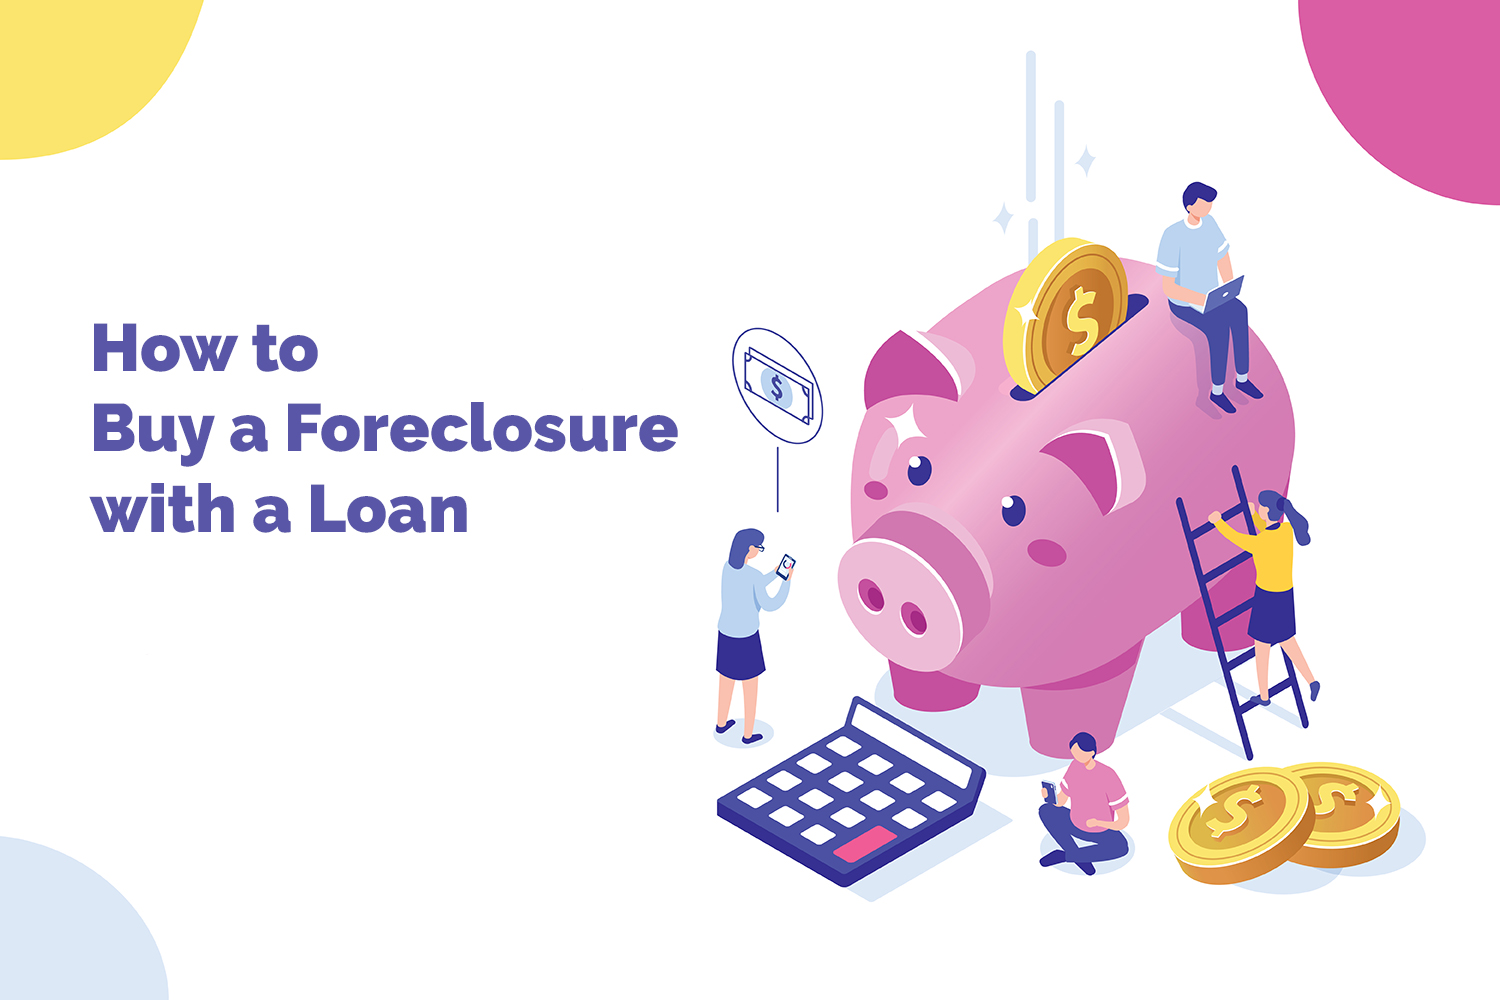 How to Buy a Foreclosure with a Loan